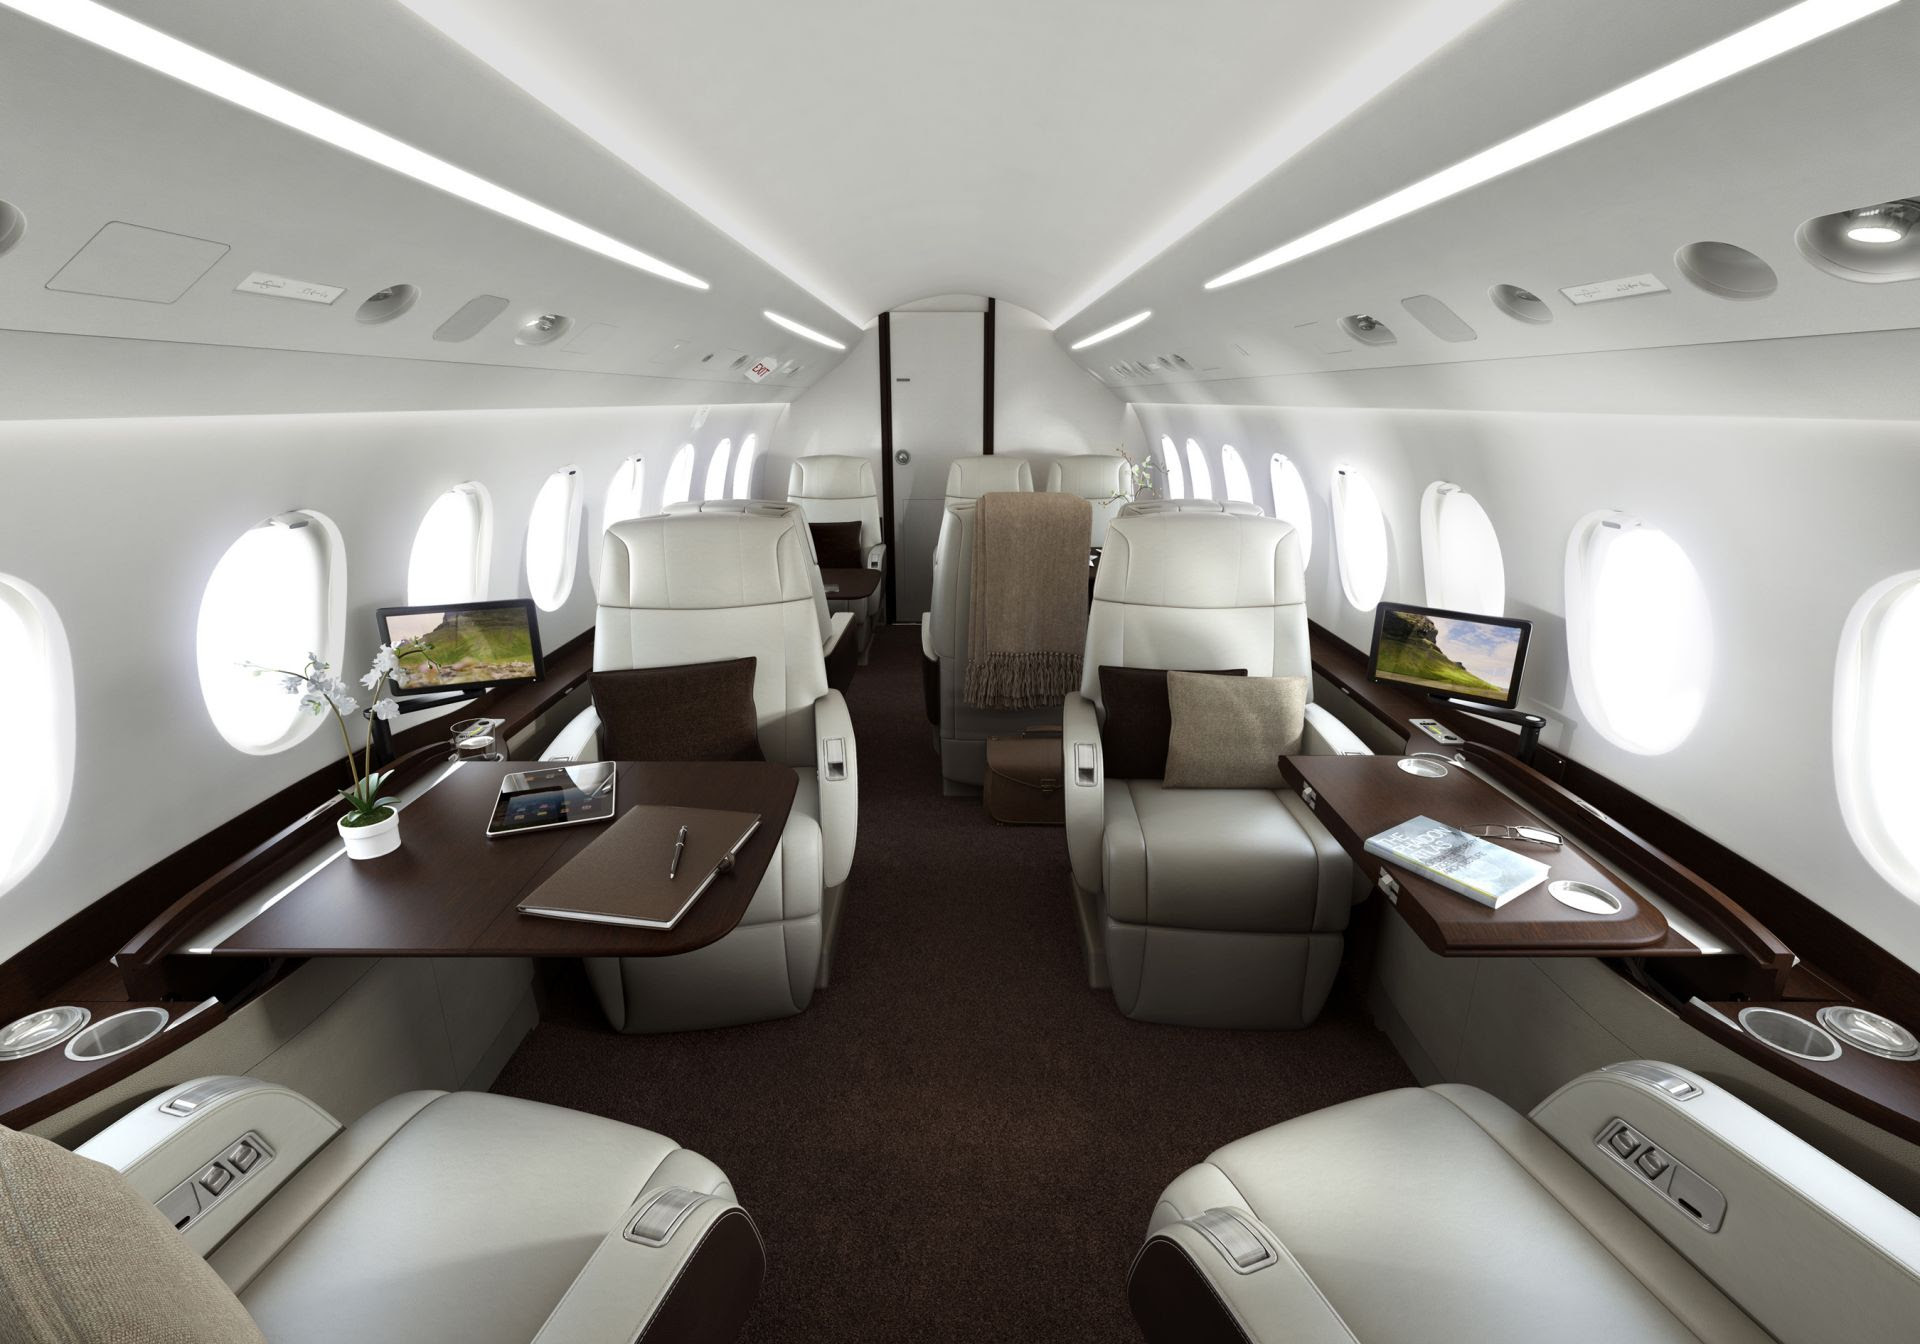 17 Of The Most Beautiful Private Jets Interiors In 2013